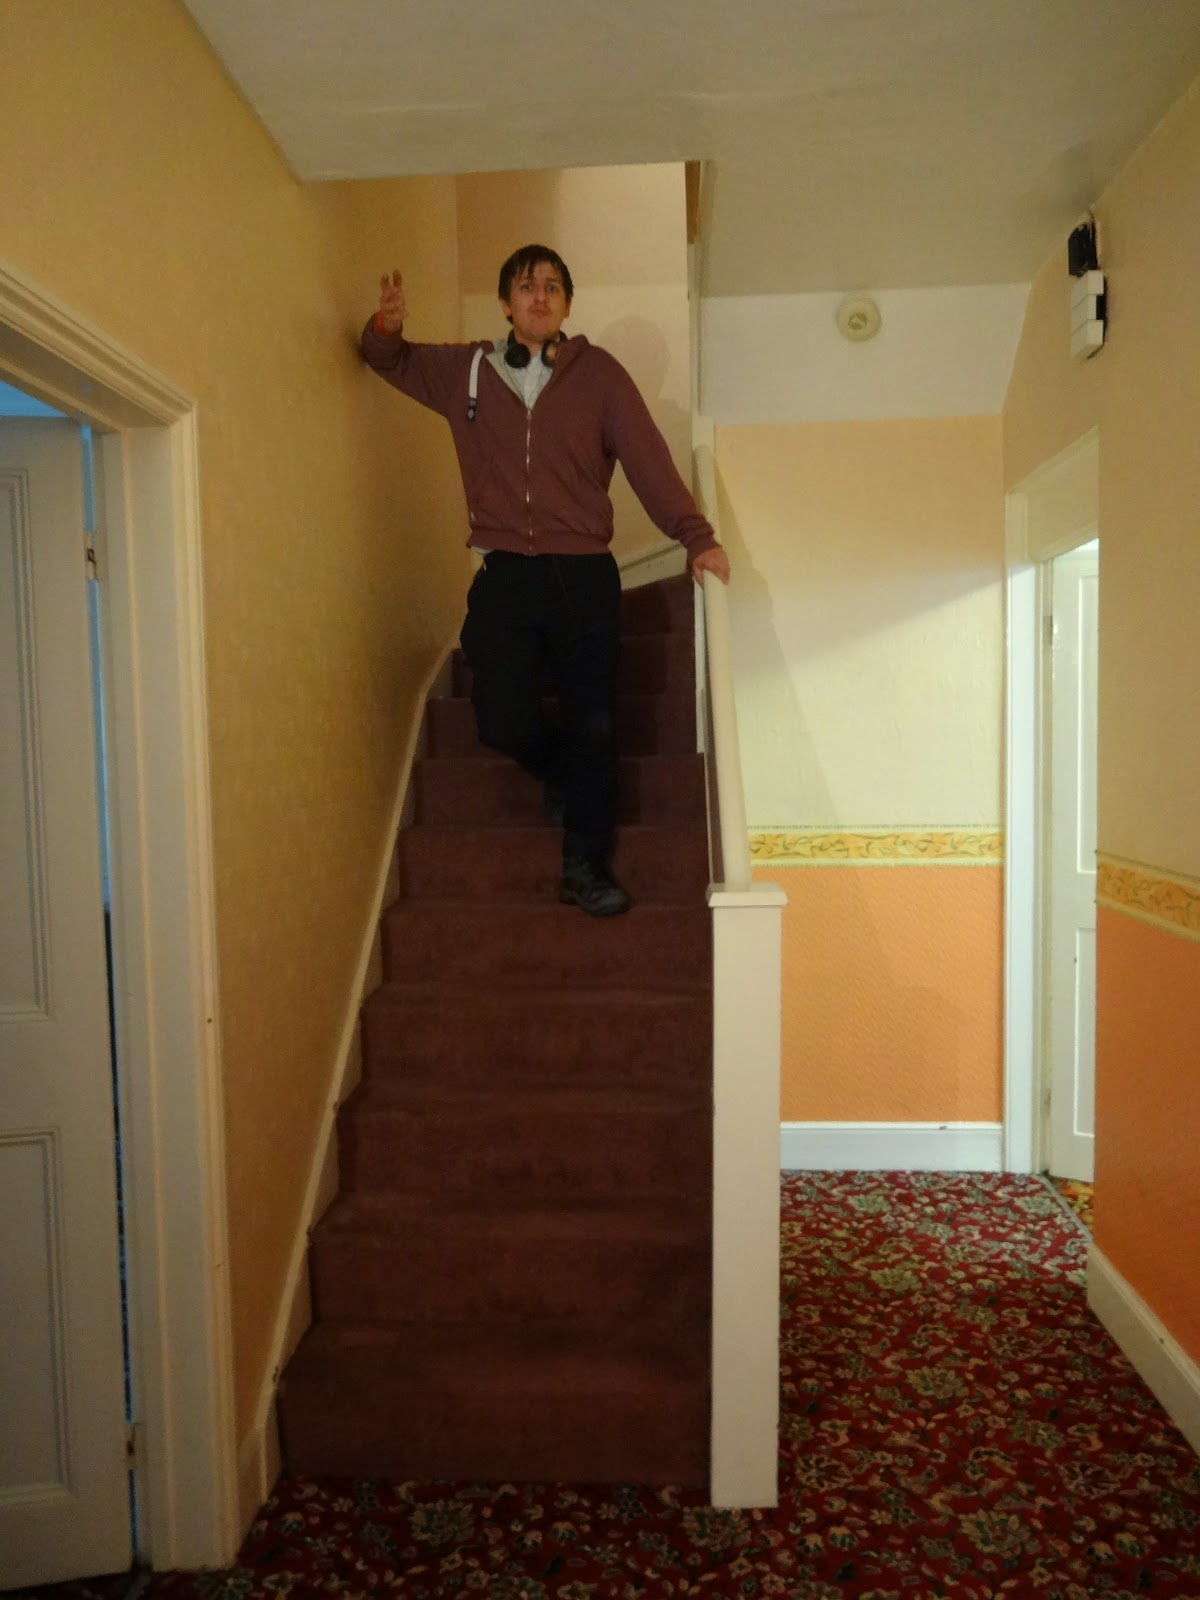 hallway with retro carpet and stairs